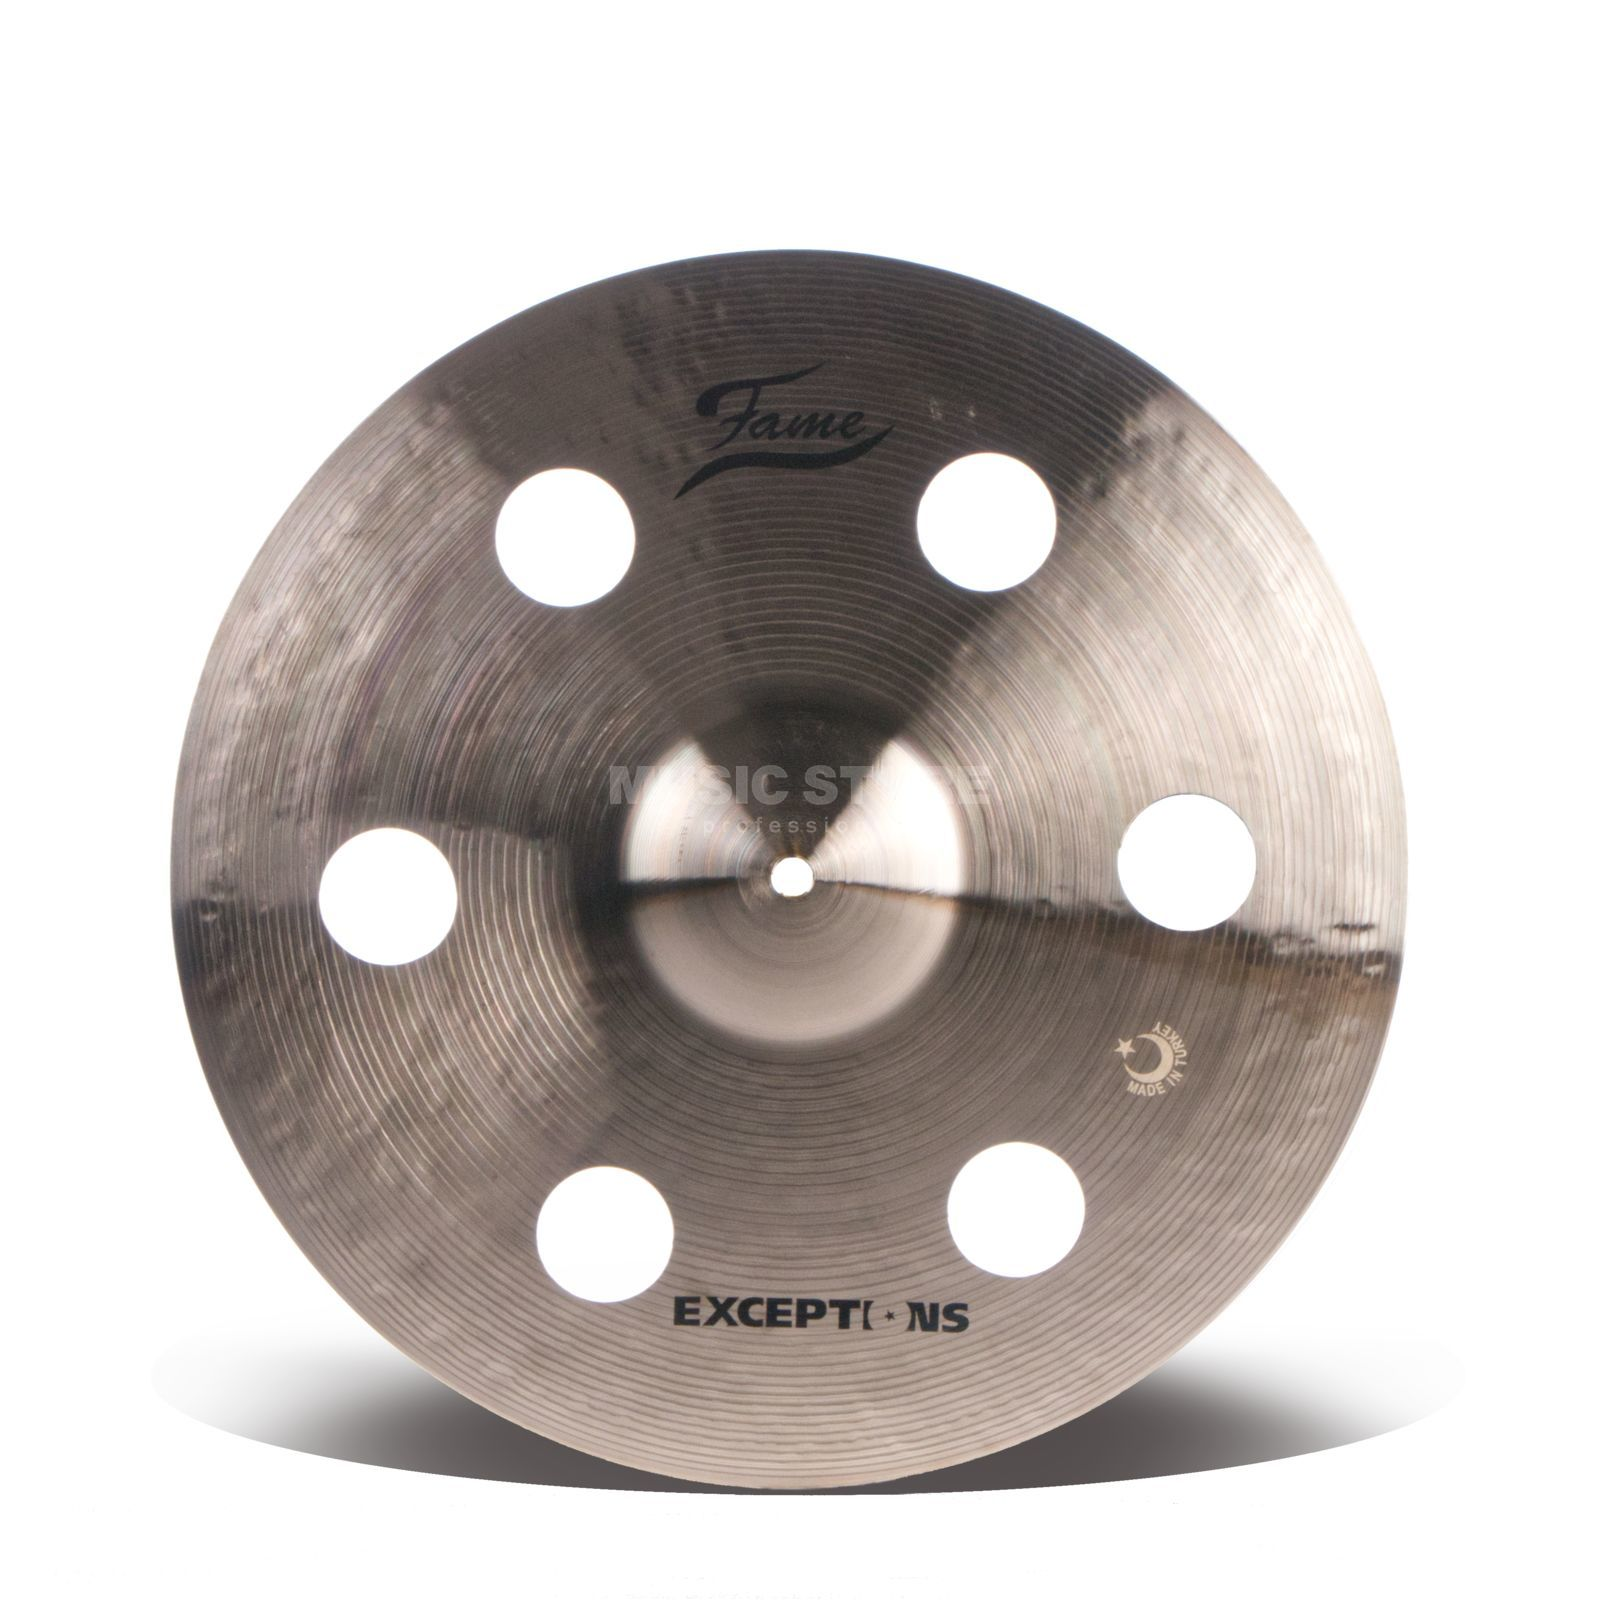 "Fame Masters B20 Holey Crash 16"" Natural Finish Produktbild"